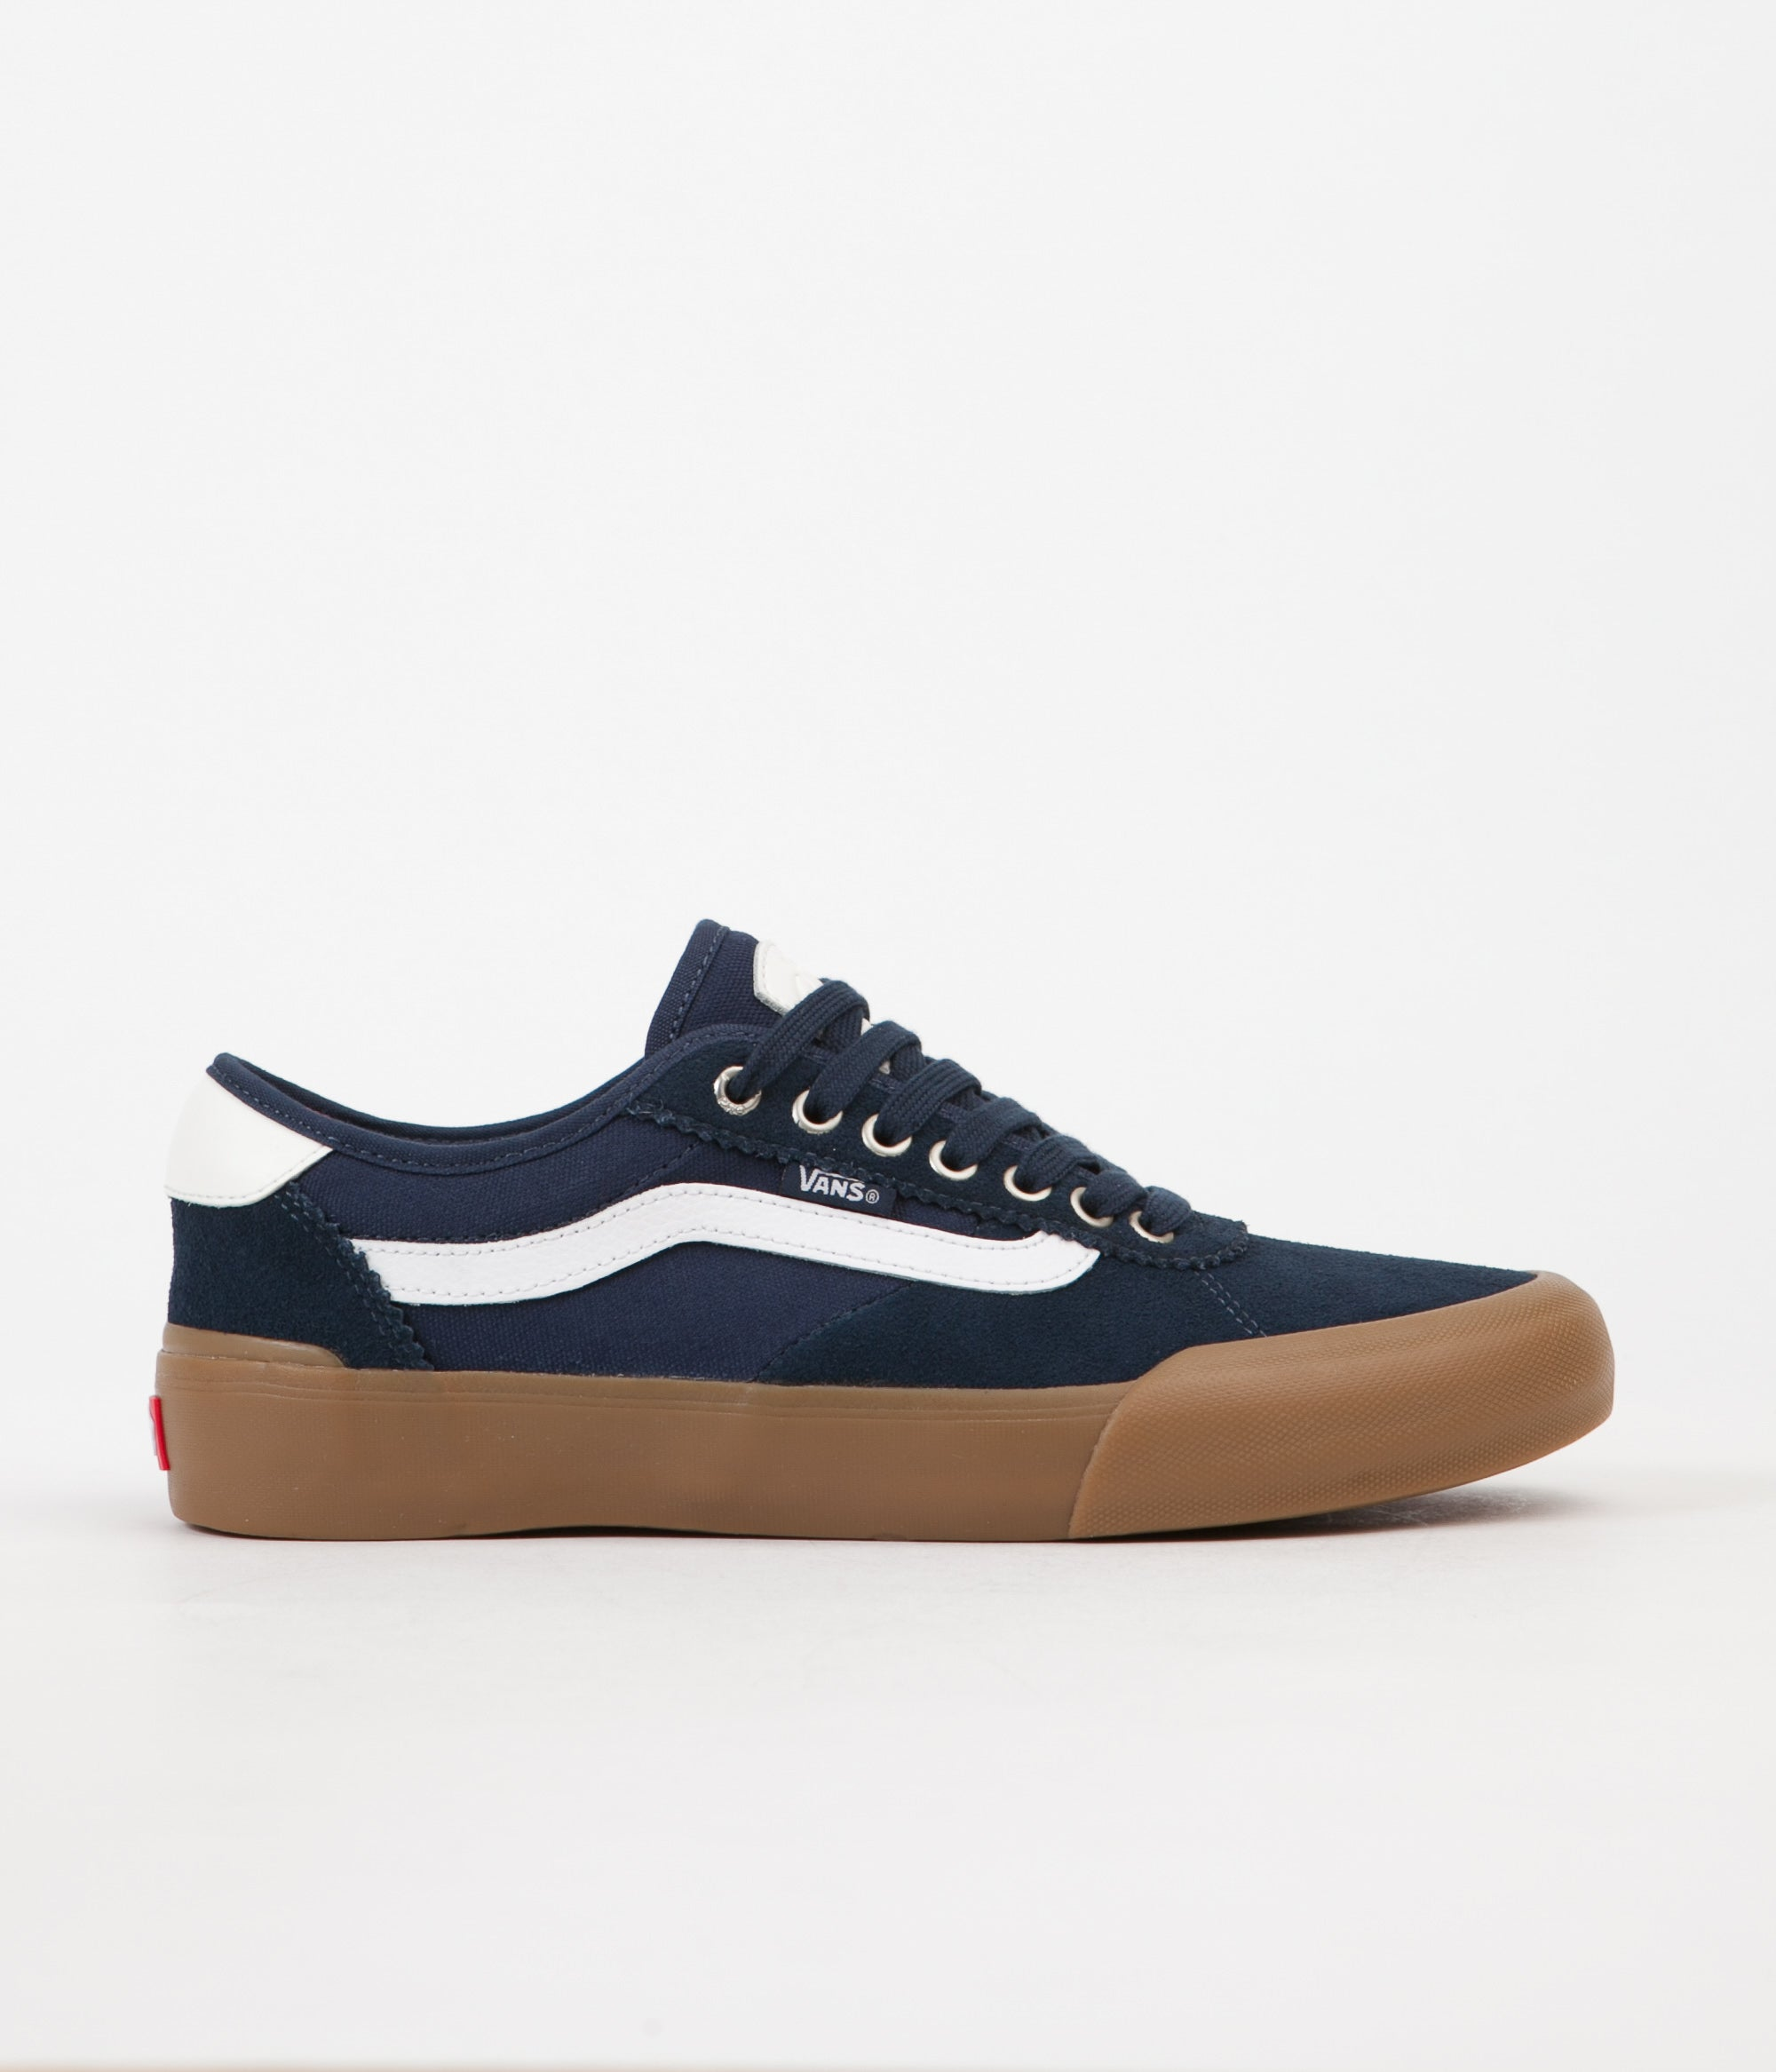 Vans Chima Pro 2 Shoes - Navy   Gum   White  509ead5d7